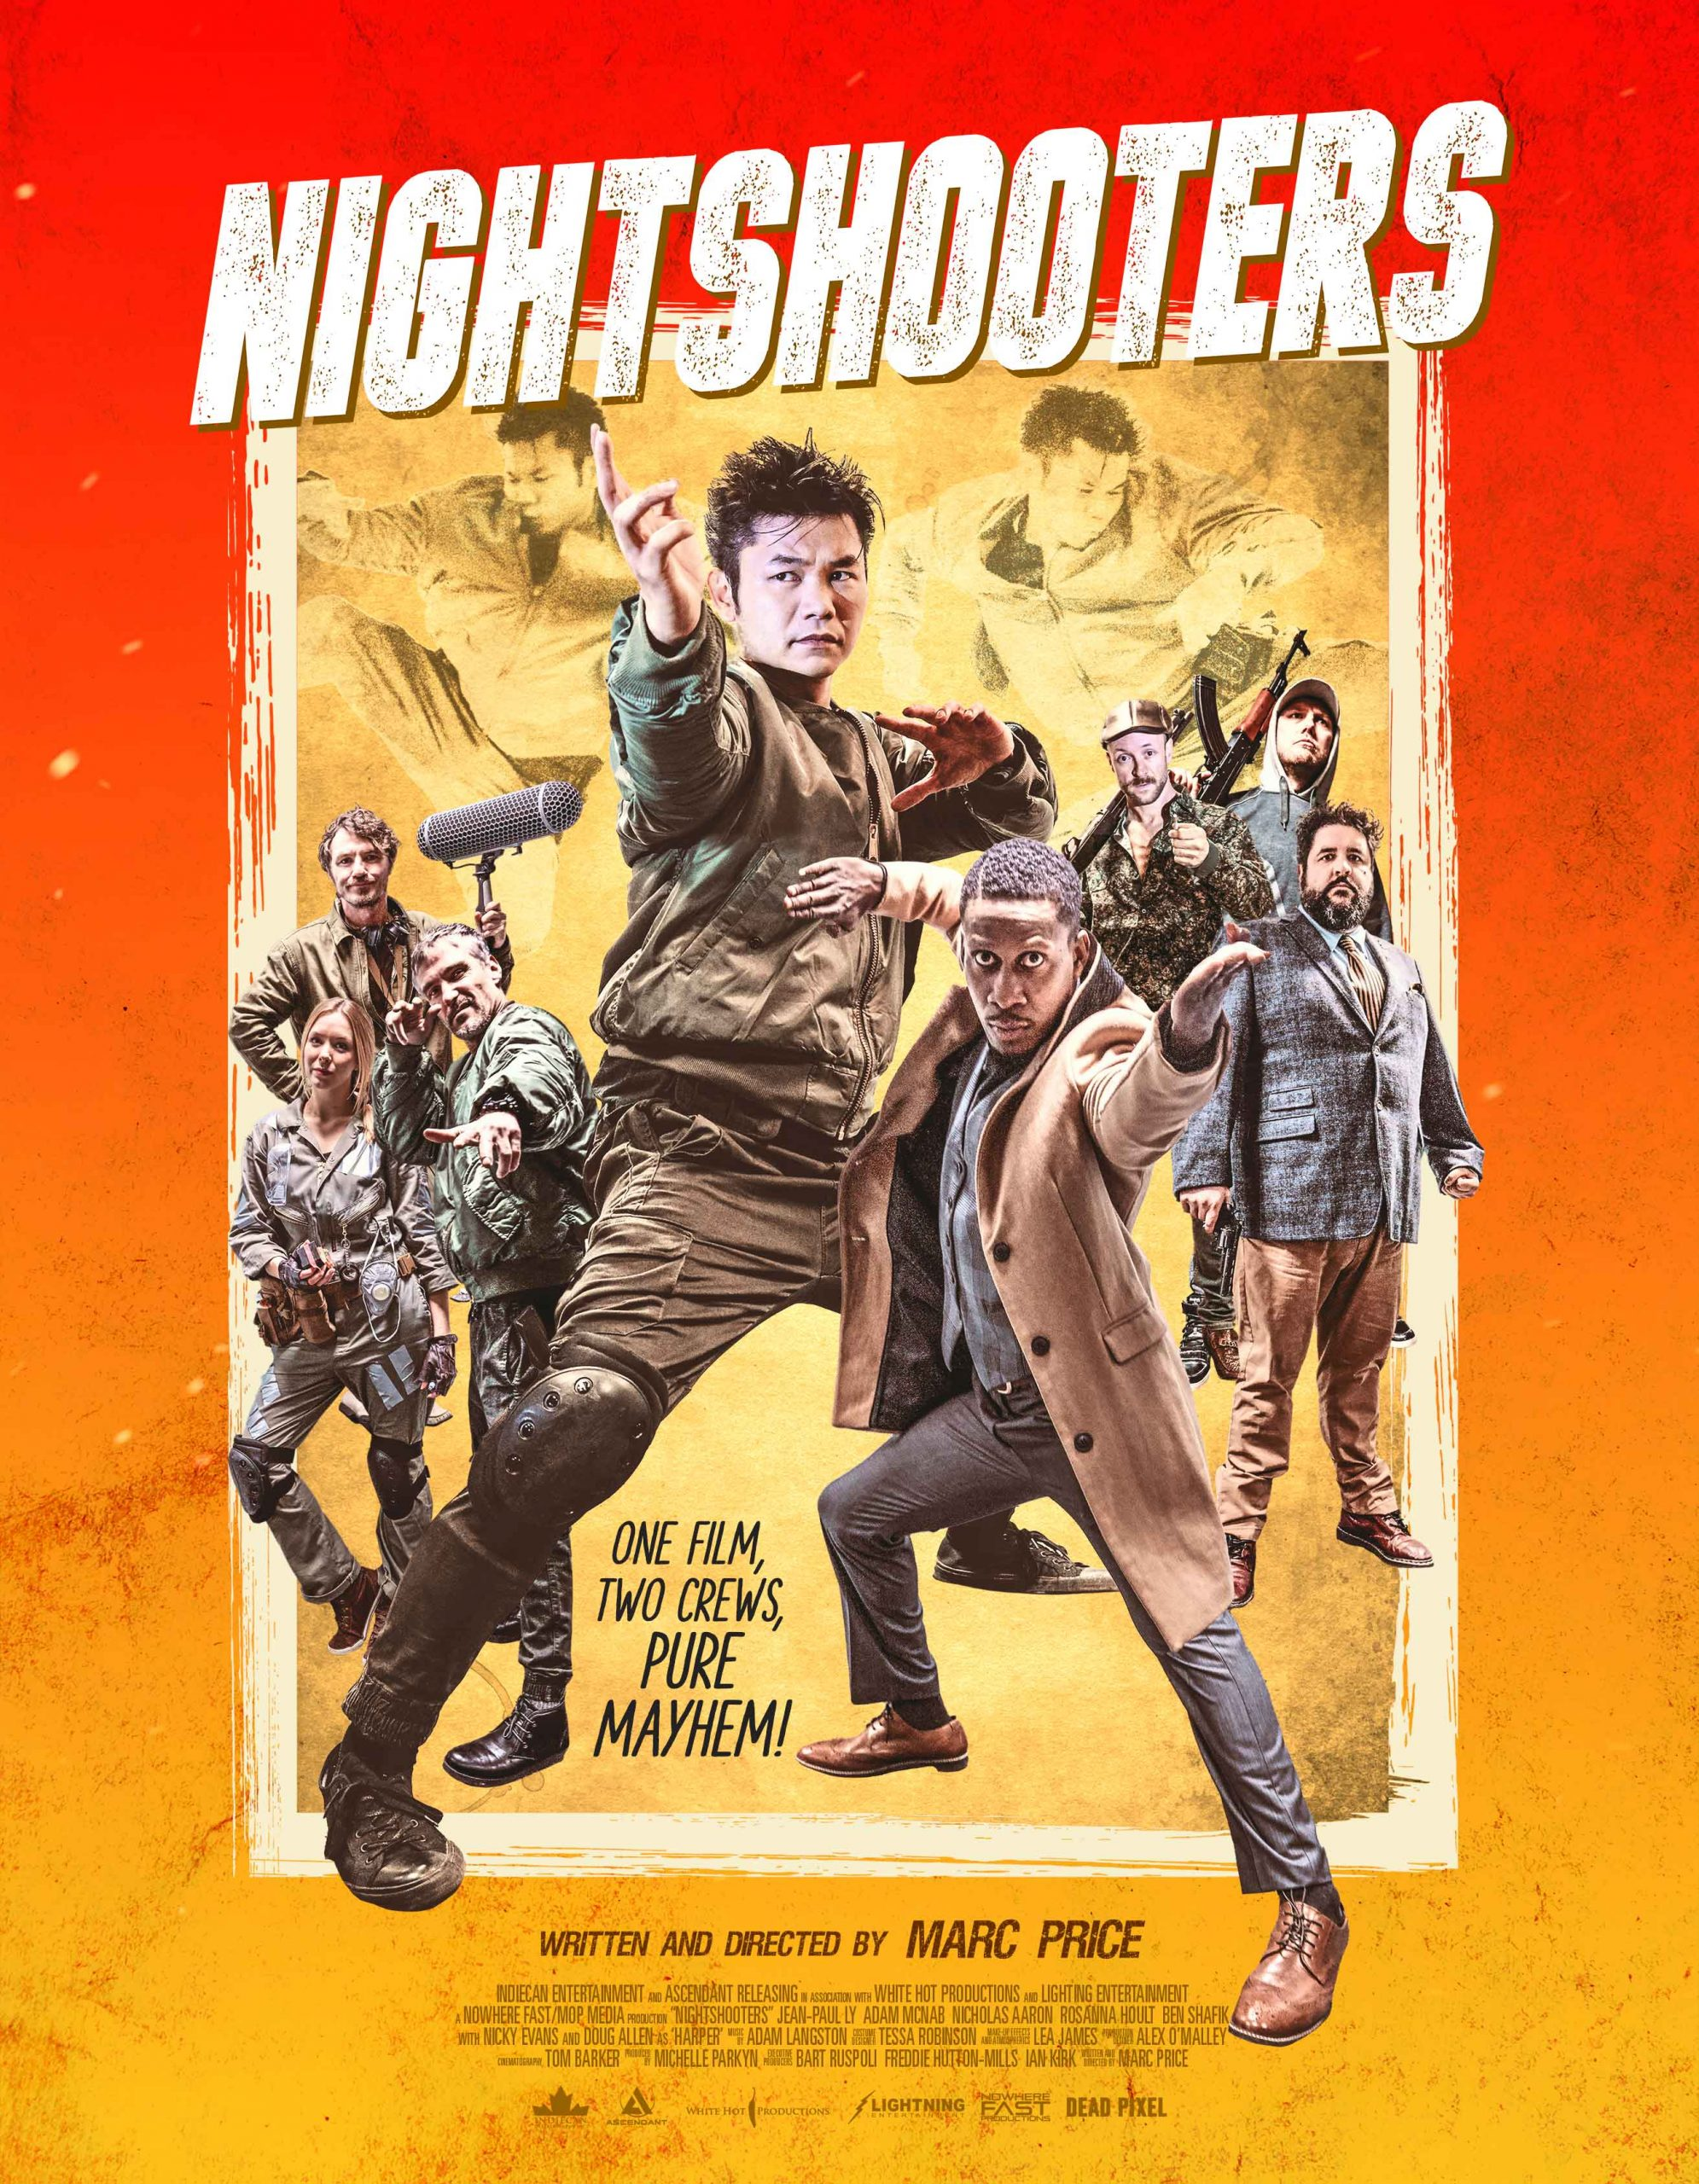 Gritty Filmmaking Becomes a Fight to the Death in NIGHTSHOOTERS Available on Digital HD & Cable VOD from Indiecan Entertainment (USA / 2 November)